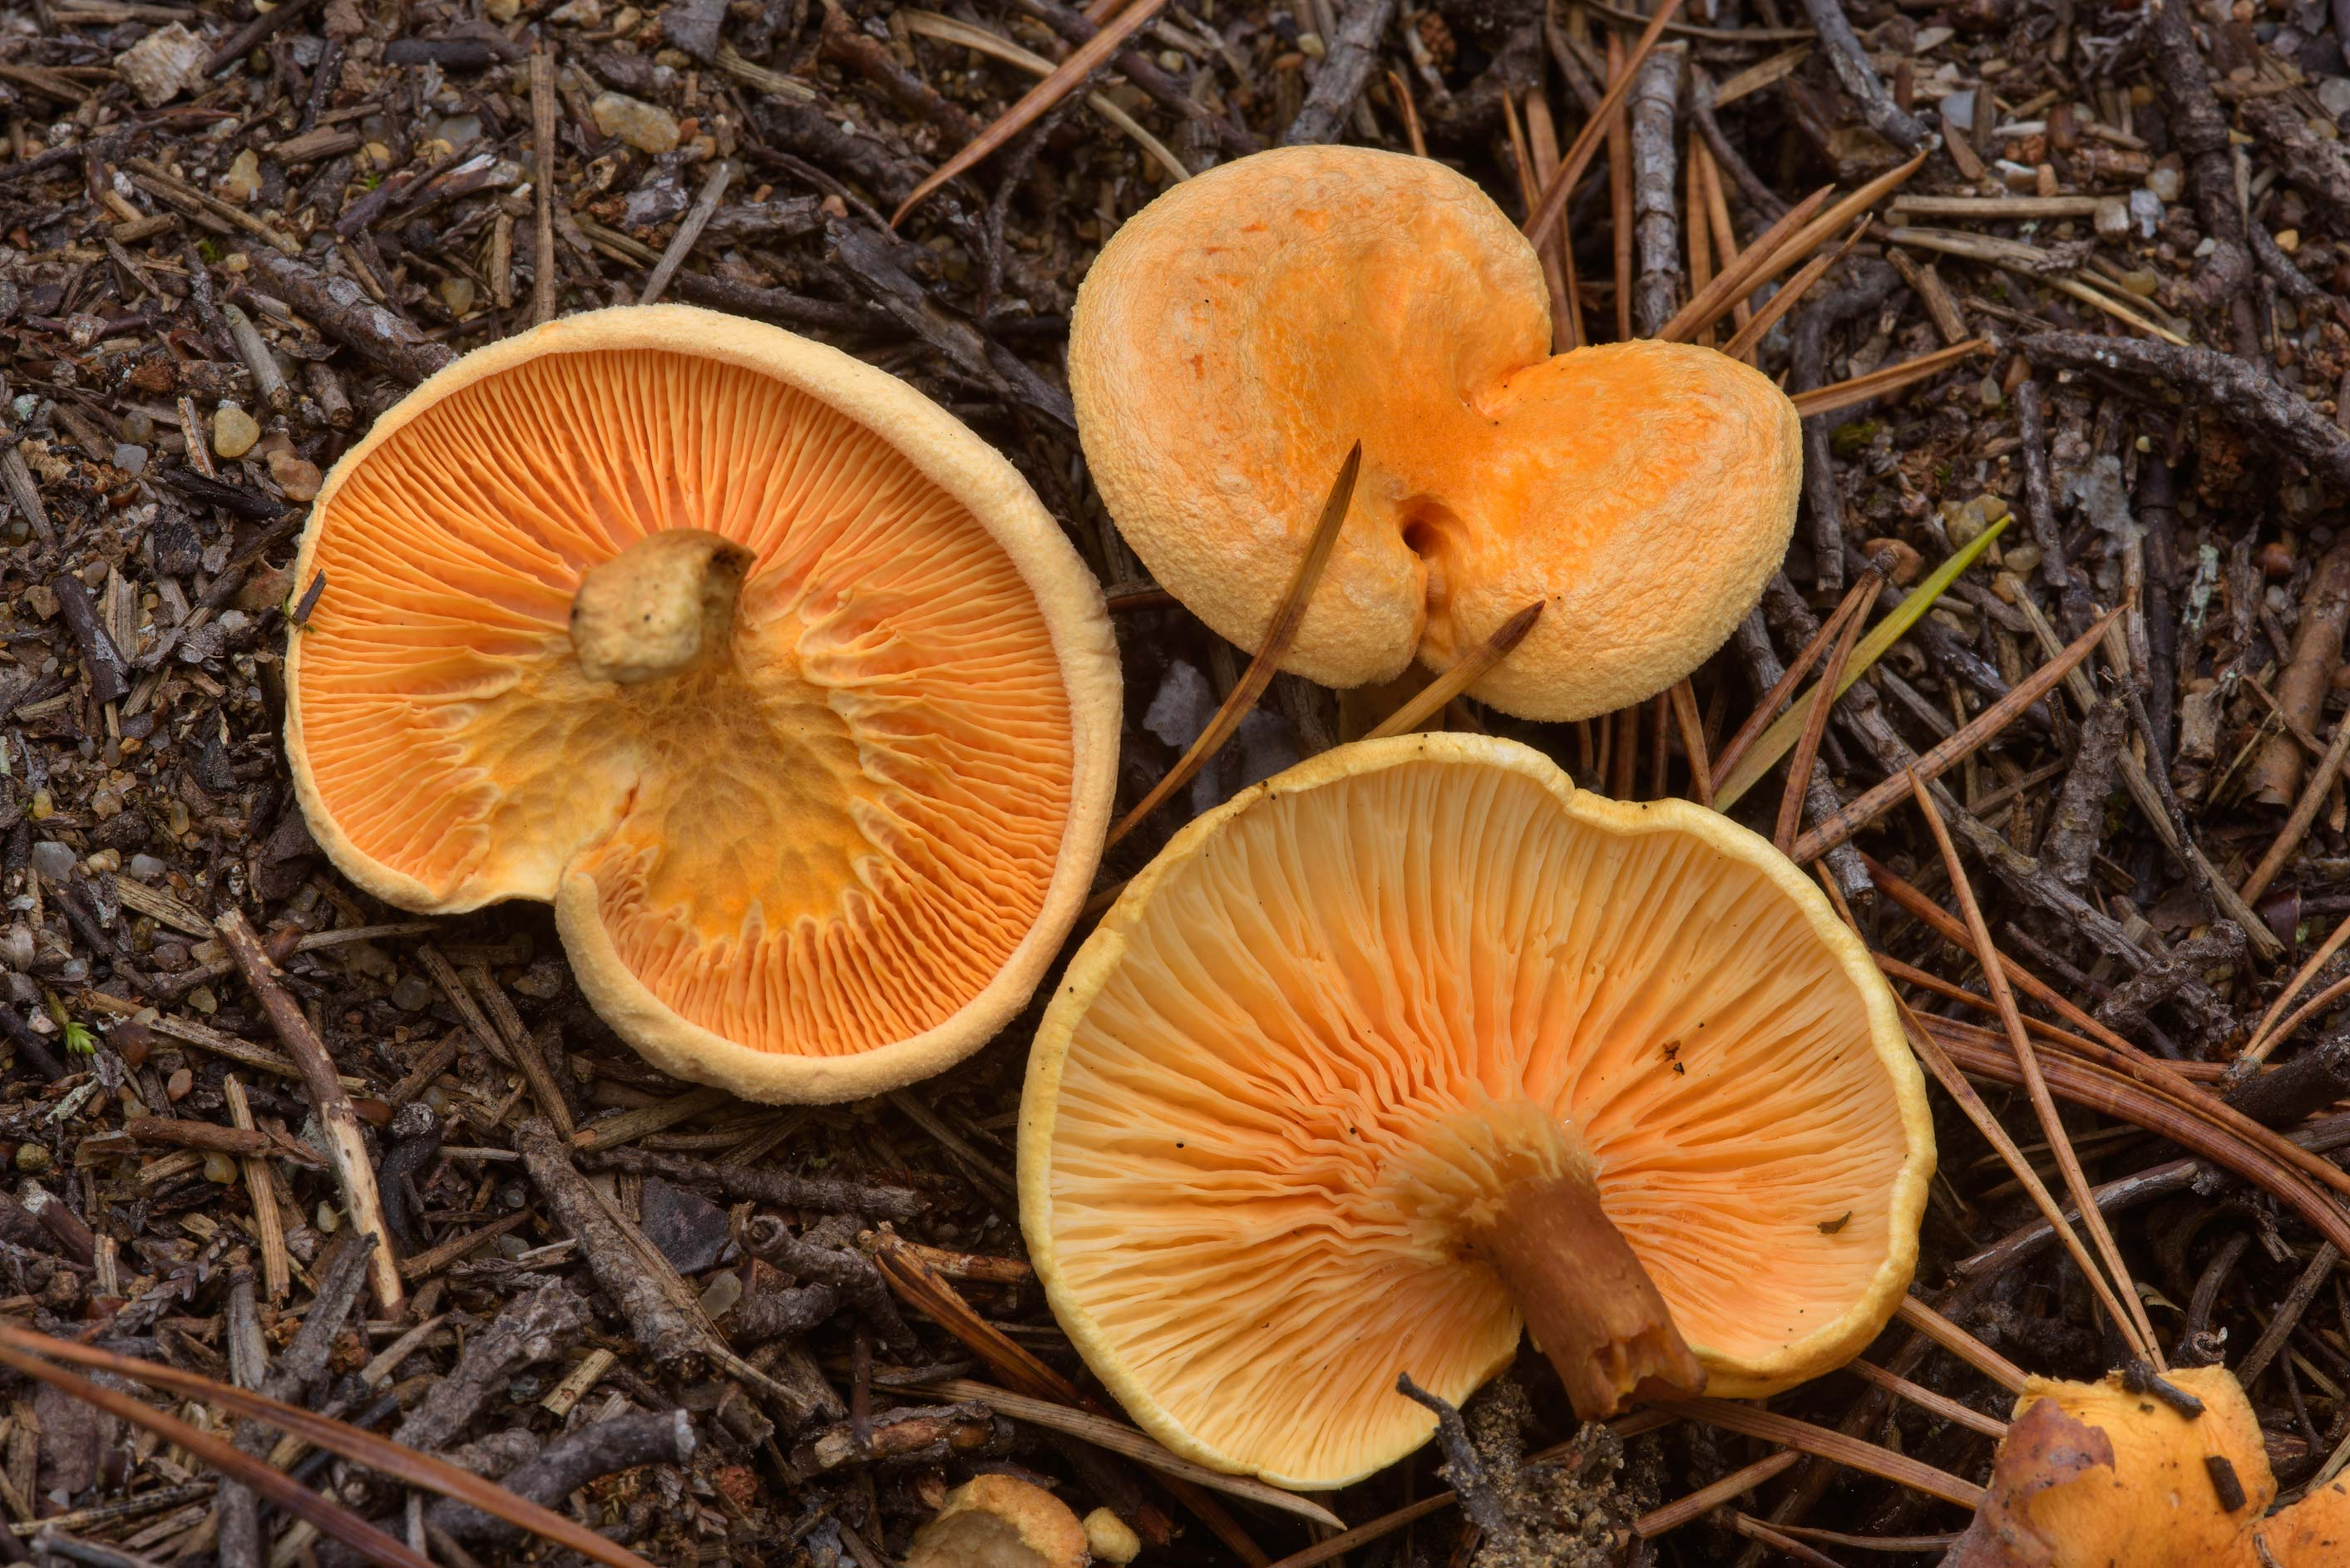 False chanterelle mushrooms (Hygrophoropsis...north from St.Petersburg, Russia